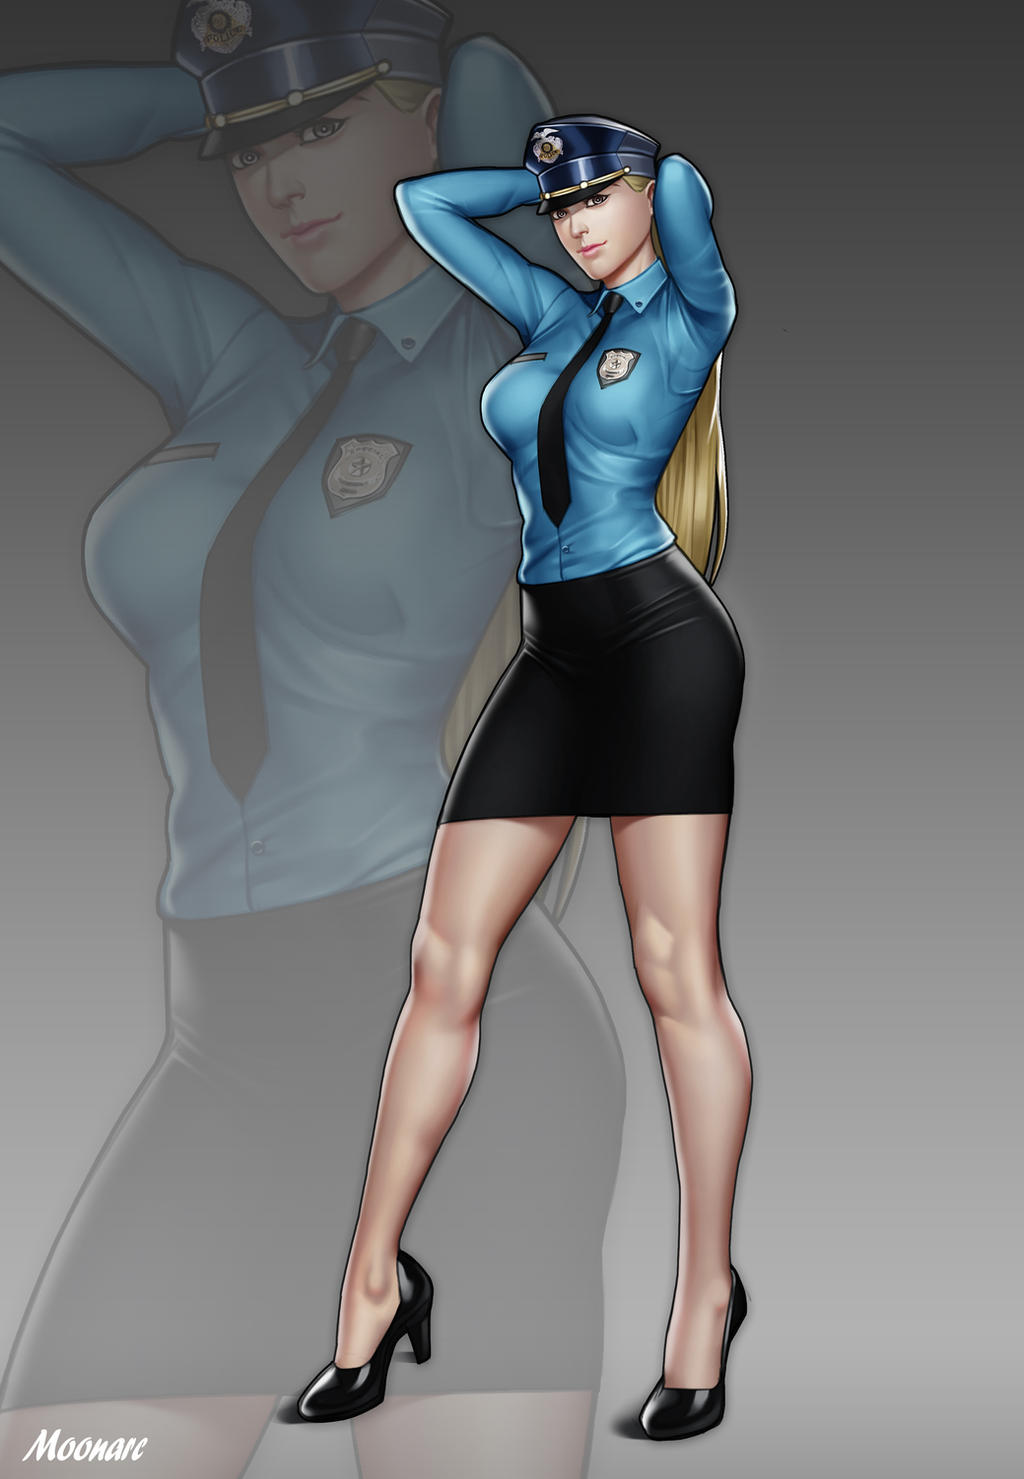 Tessa Knight by Moonarc on DeviantArt Futuristic Police Officer